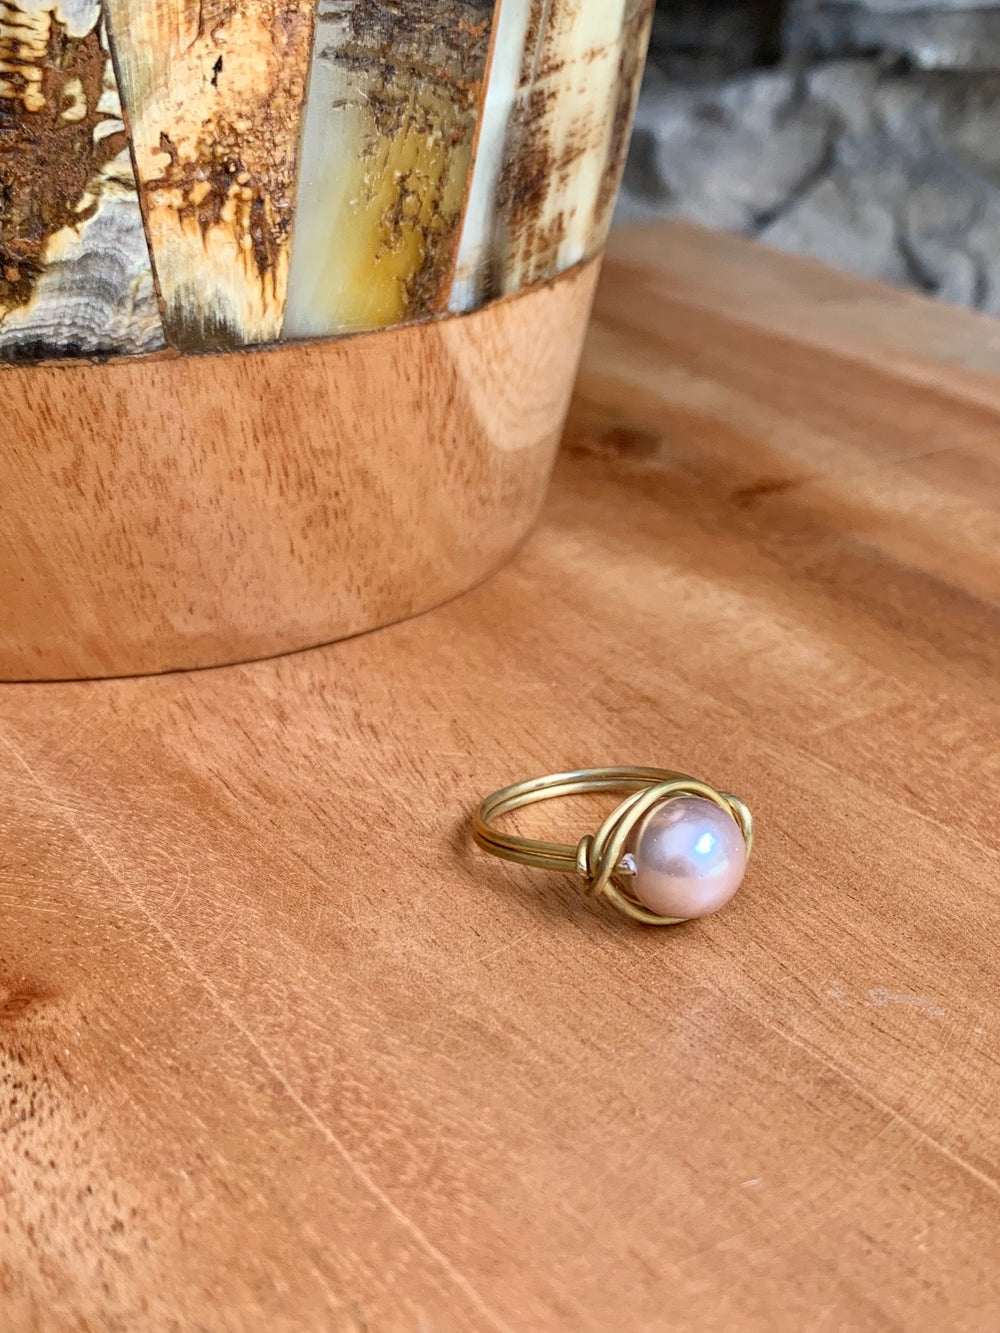 Nest Ring by Samaritan Creations from Thailand